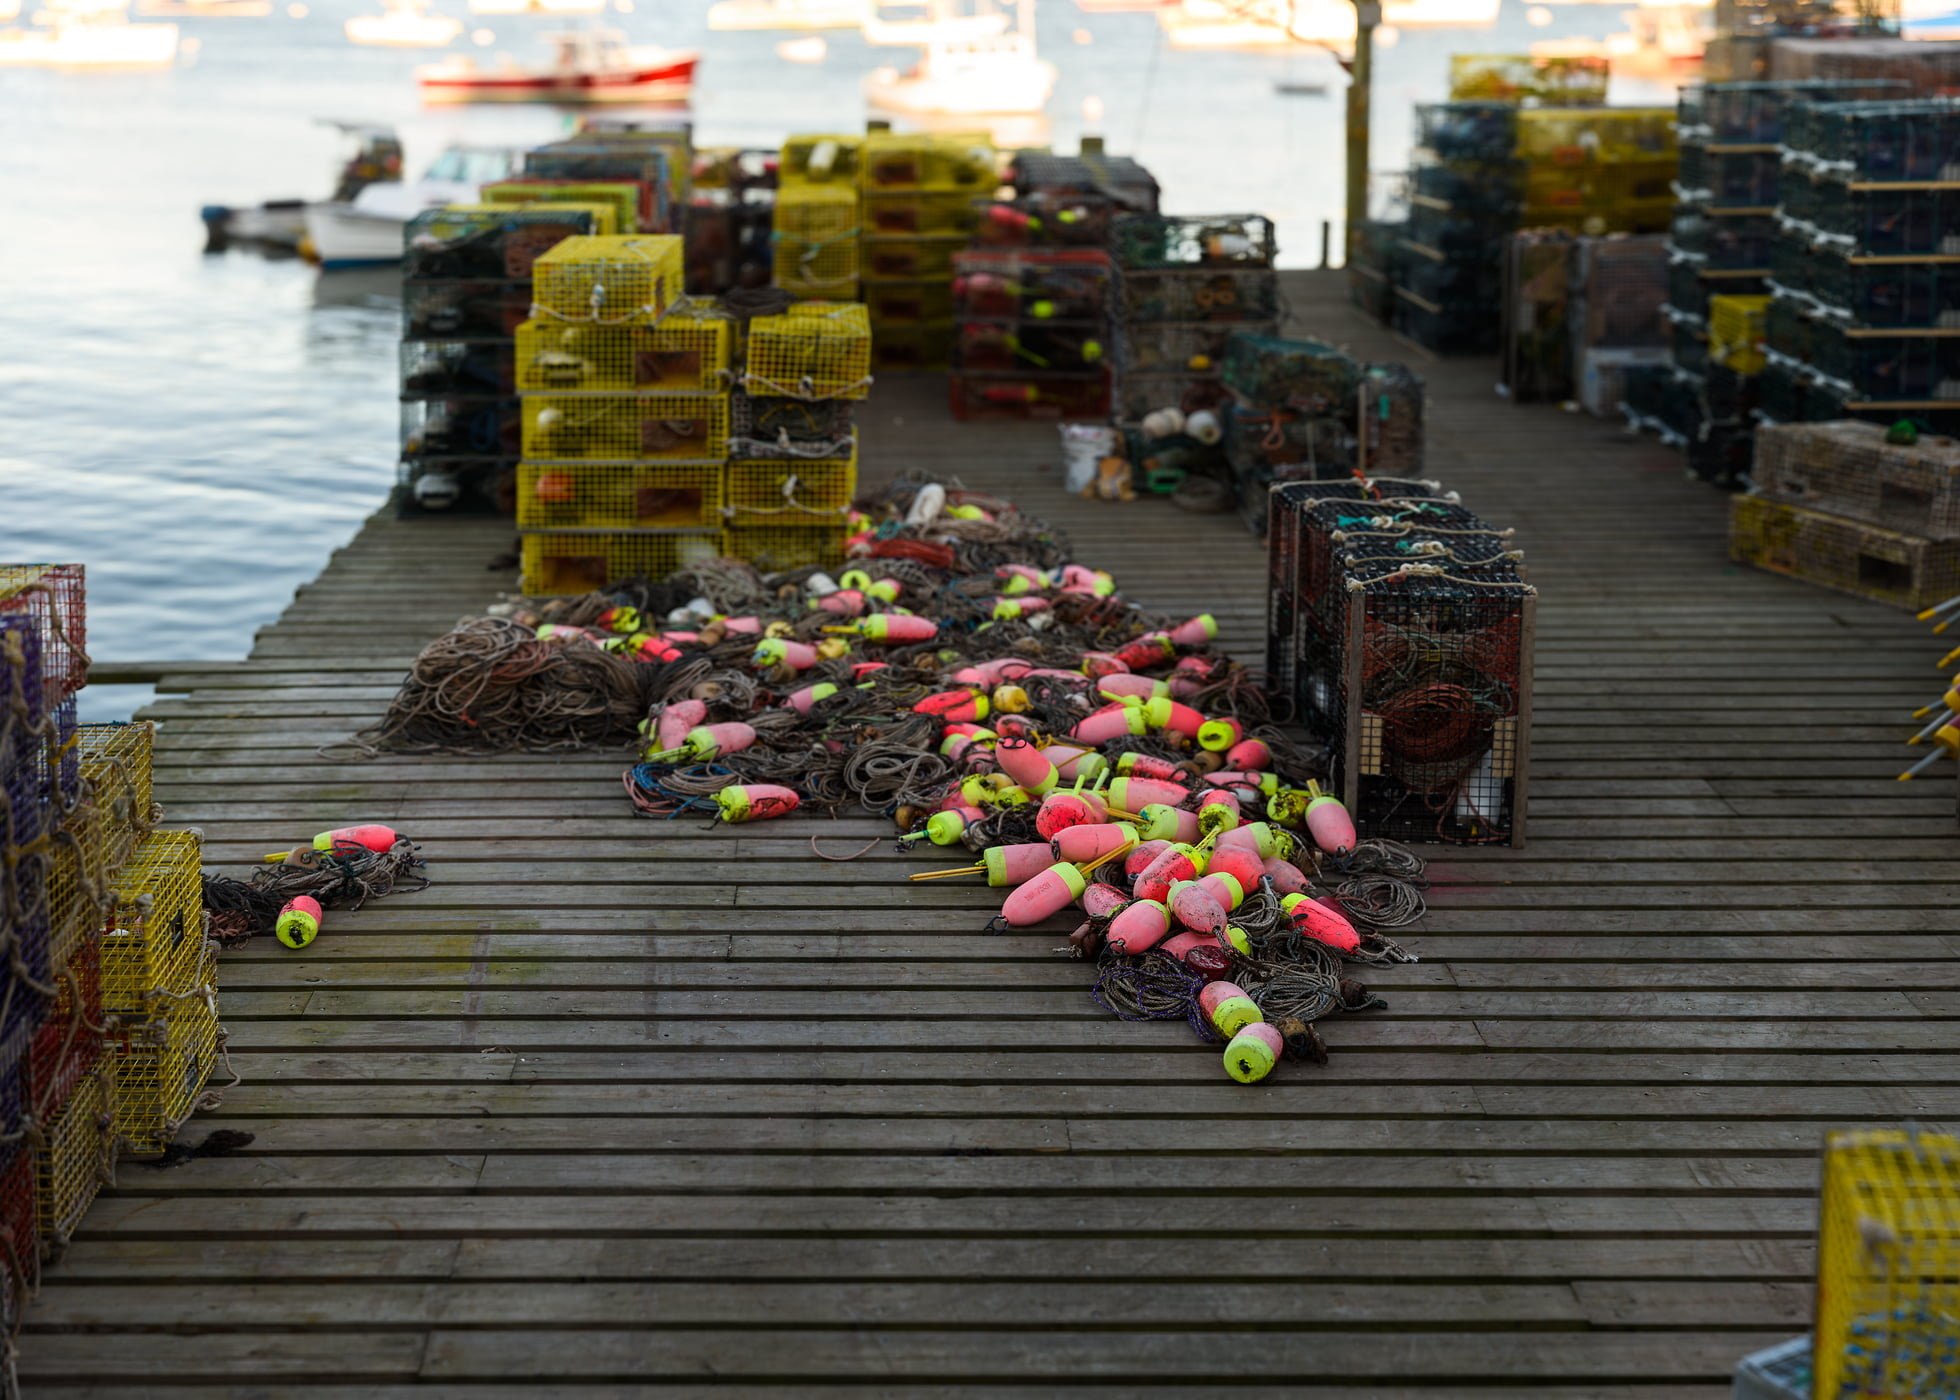 632 megapixels! A very high resolution, large-format VAST photo of a New England harbor pier with fishing equipment, lobster traps, fishing nets, buoys, and boats; fine art photograph created by Aaron Priest in Bernard, Maine